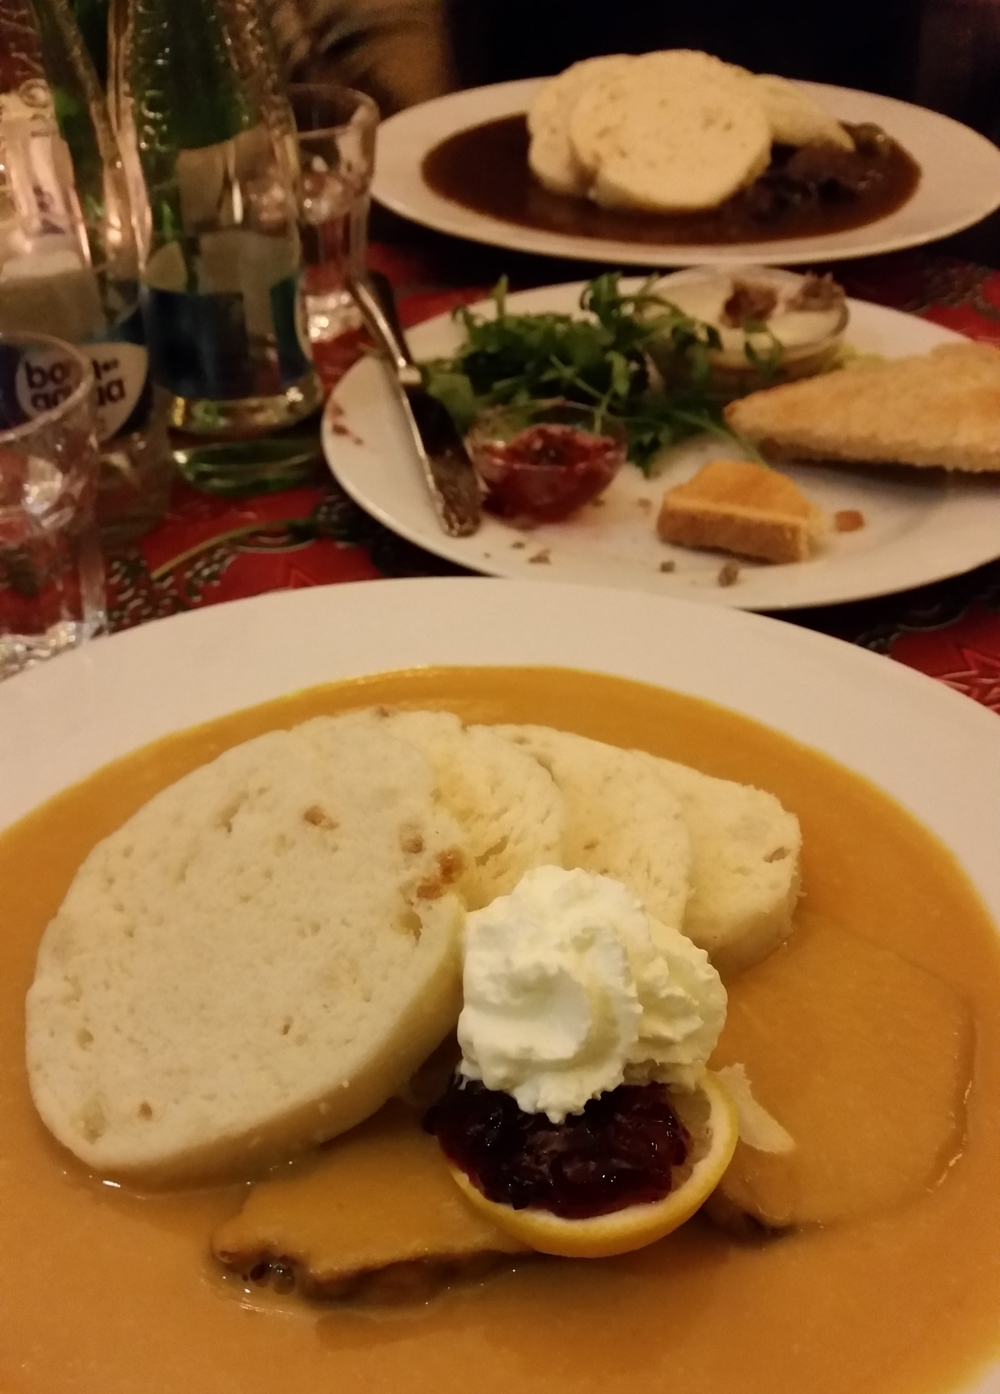 Svíčková at  u šemíka  - my friend had a brown gravy version behind.